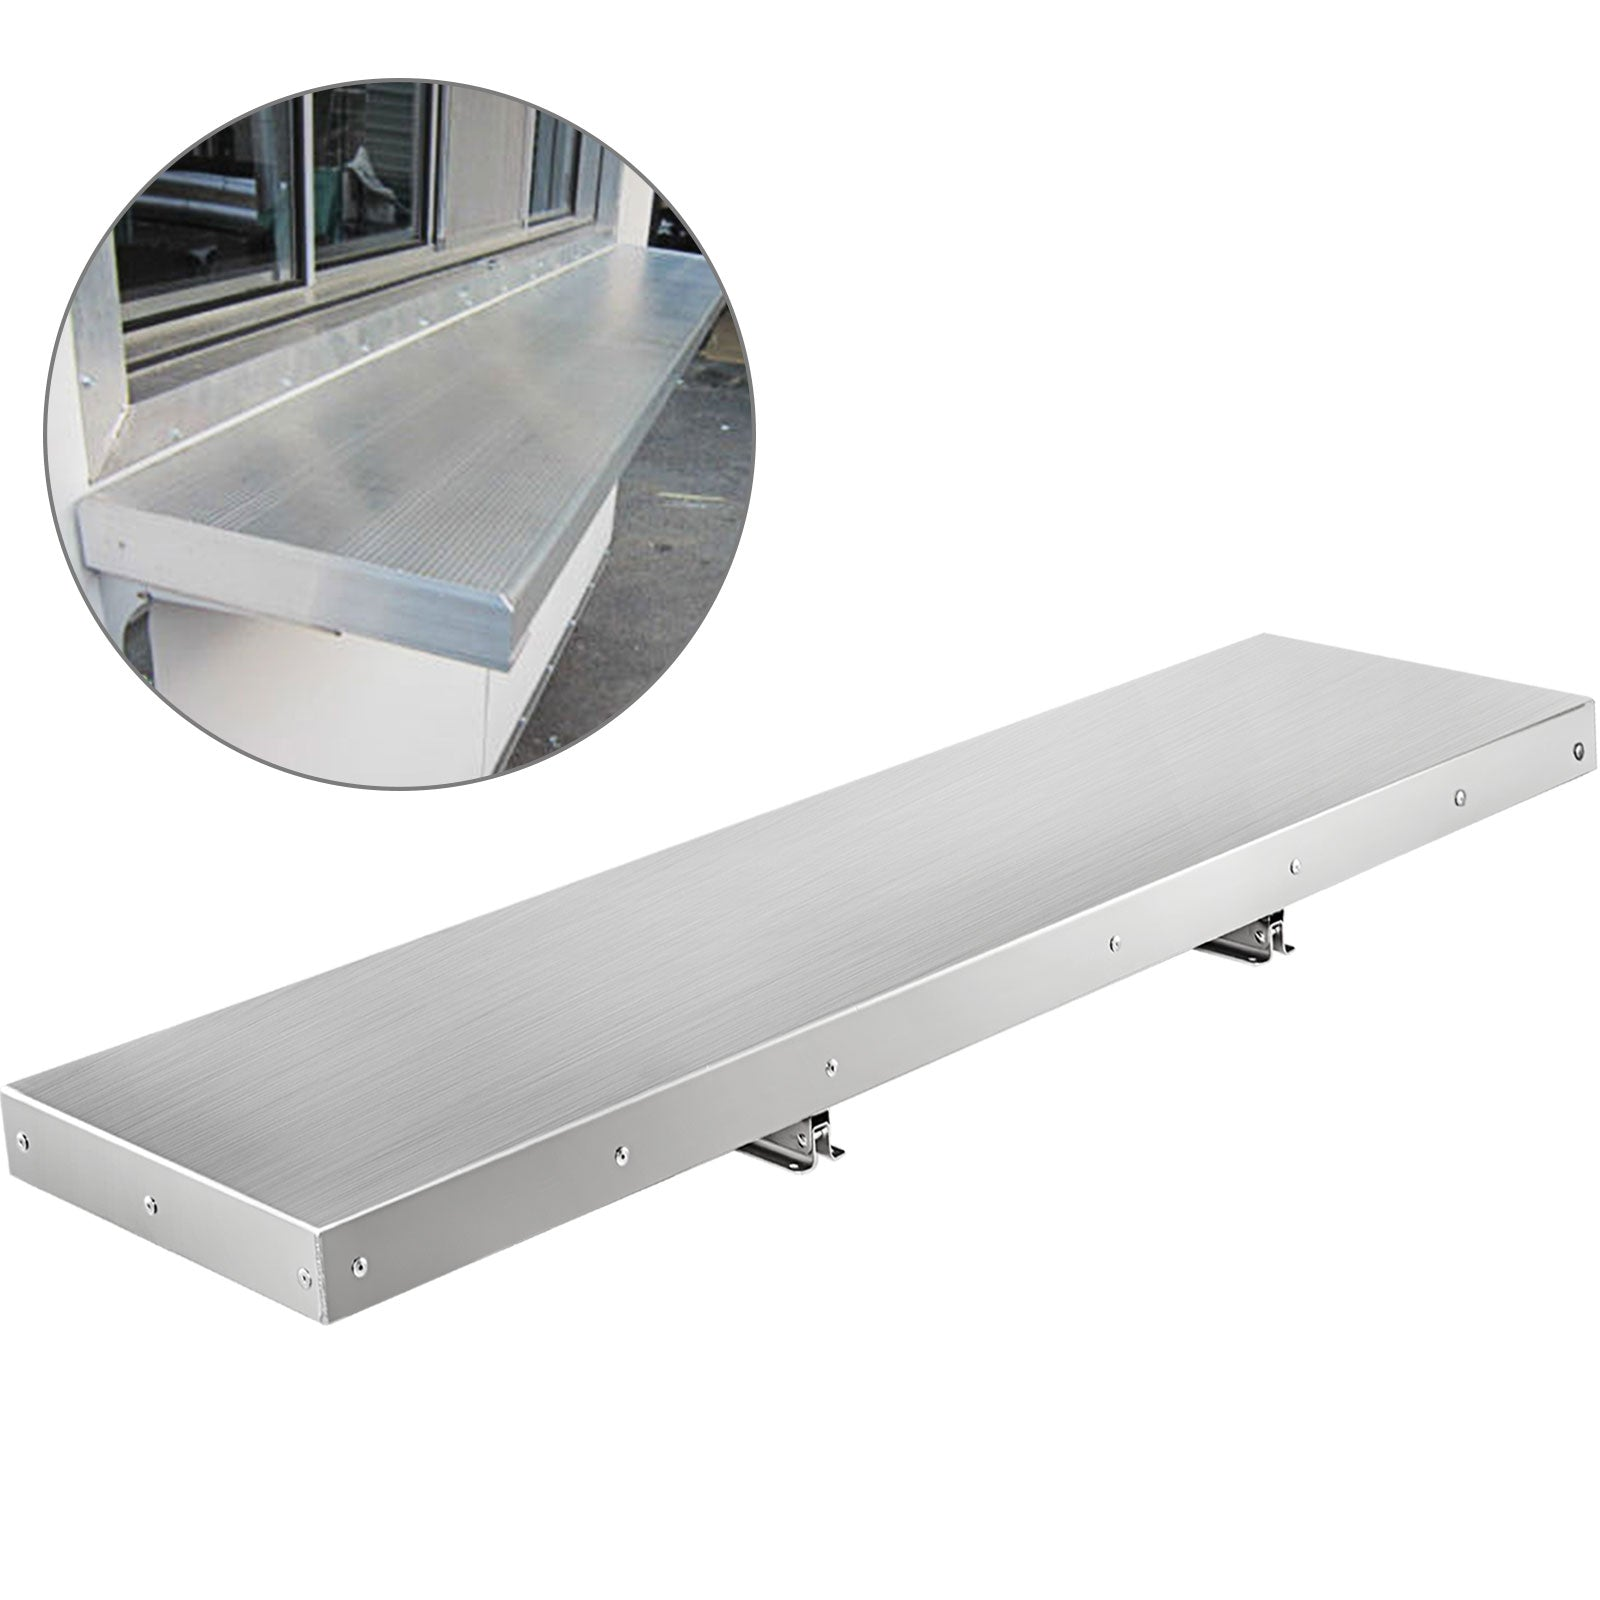 4 Foot Shelf For Concession Window Tabletop Foldable Food Truck Accessories